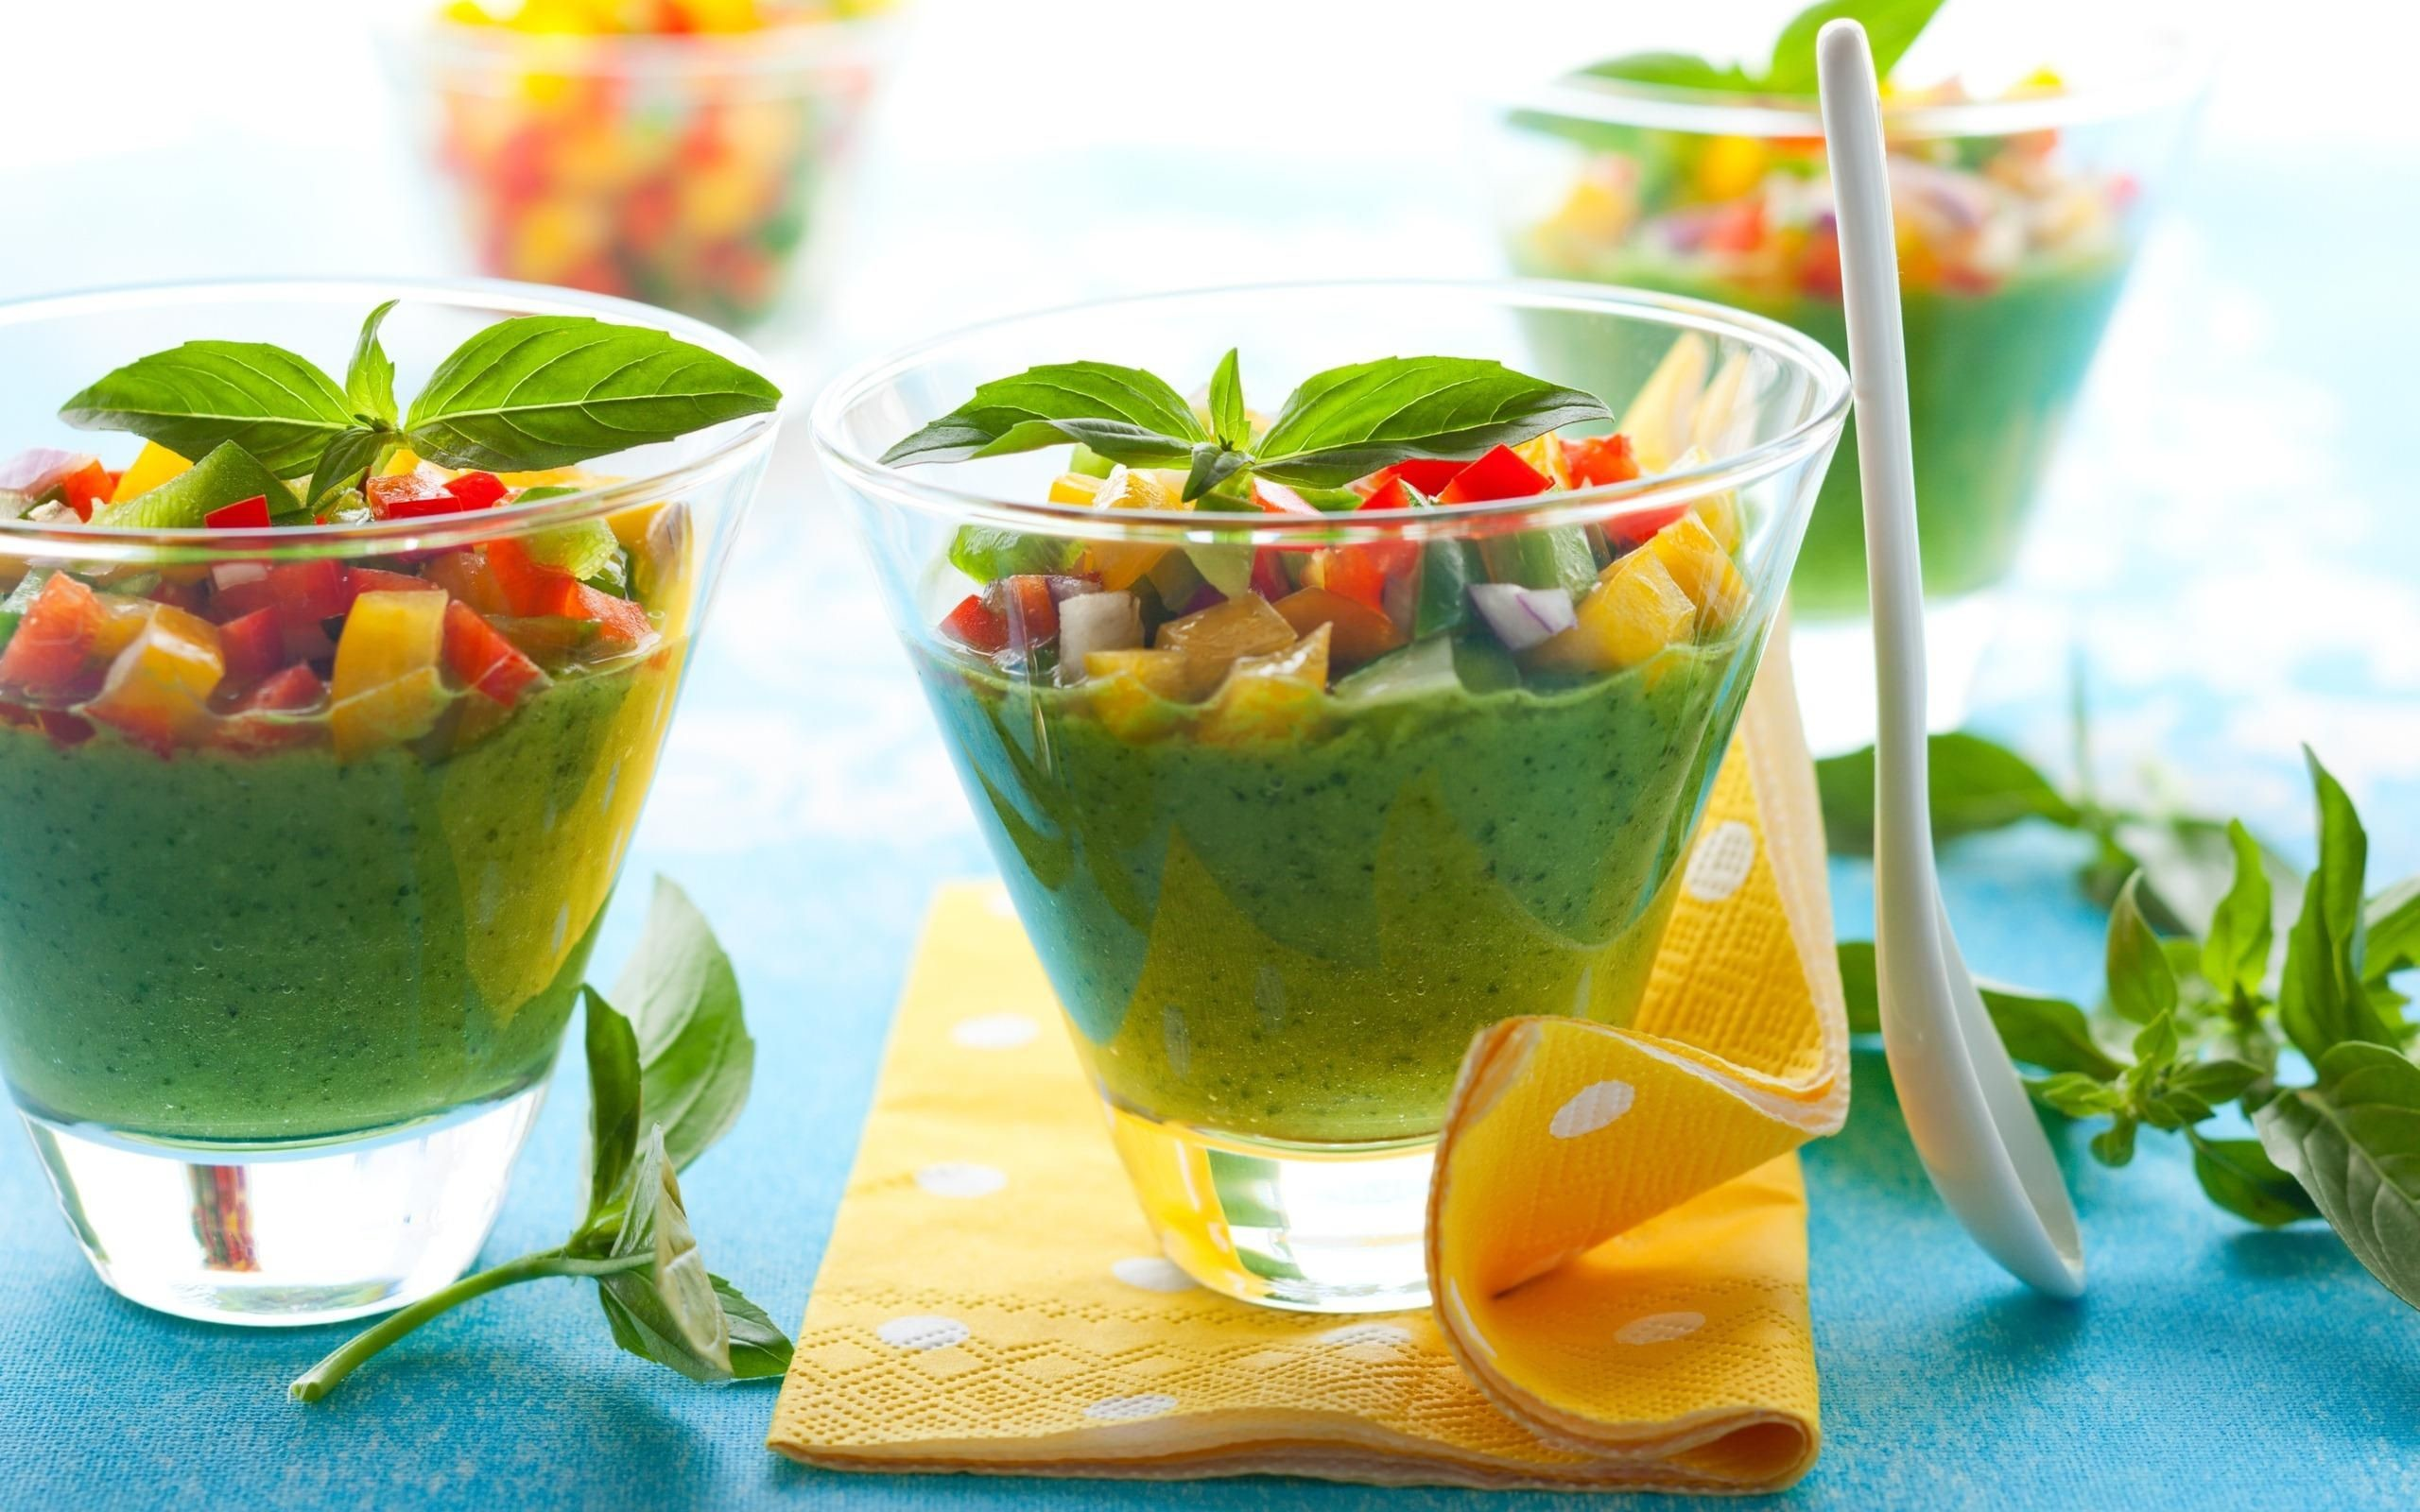 Food And Drink: Healthy Food Wallpaper (65+ Images